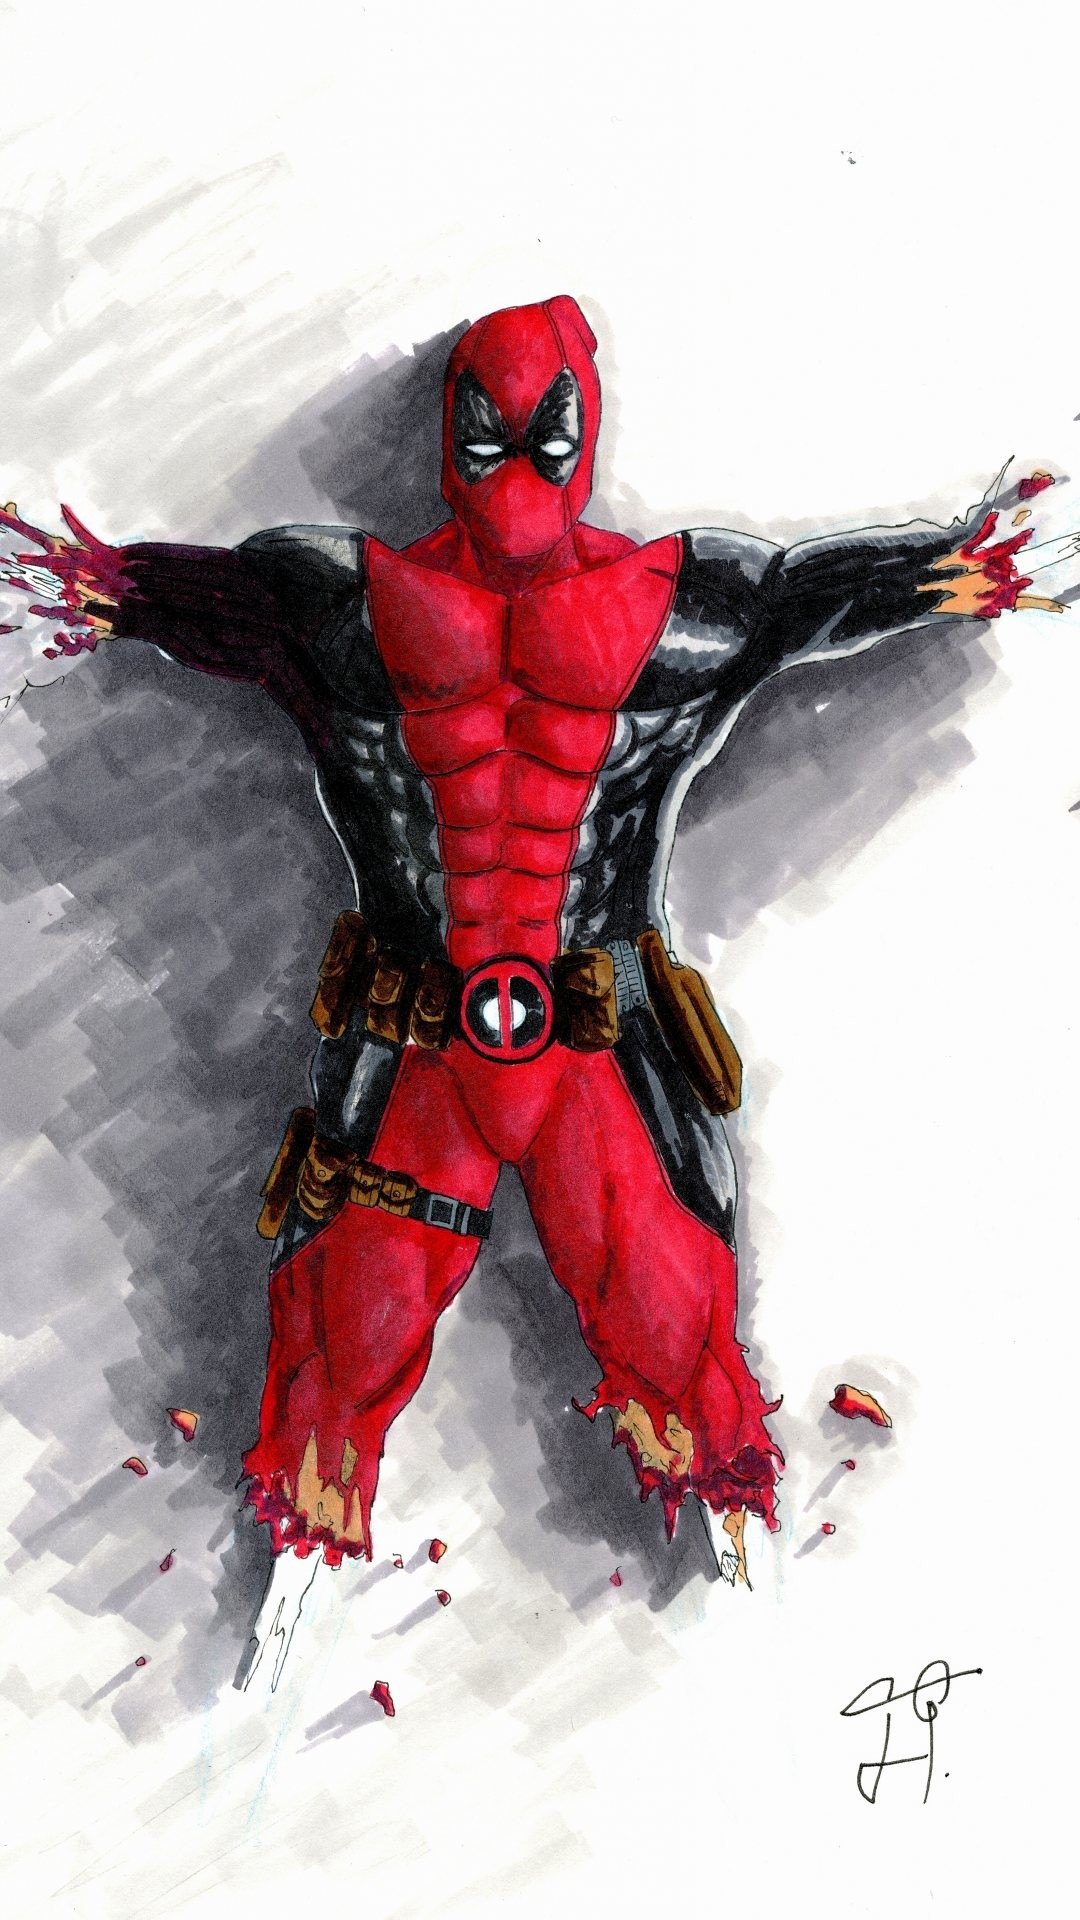 Deadpool Hd Wallpaper Iphone 6 Deadpool Hd Wallpapers For Iphone 6 Plus Wallpapers Pictures